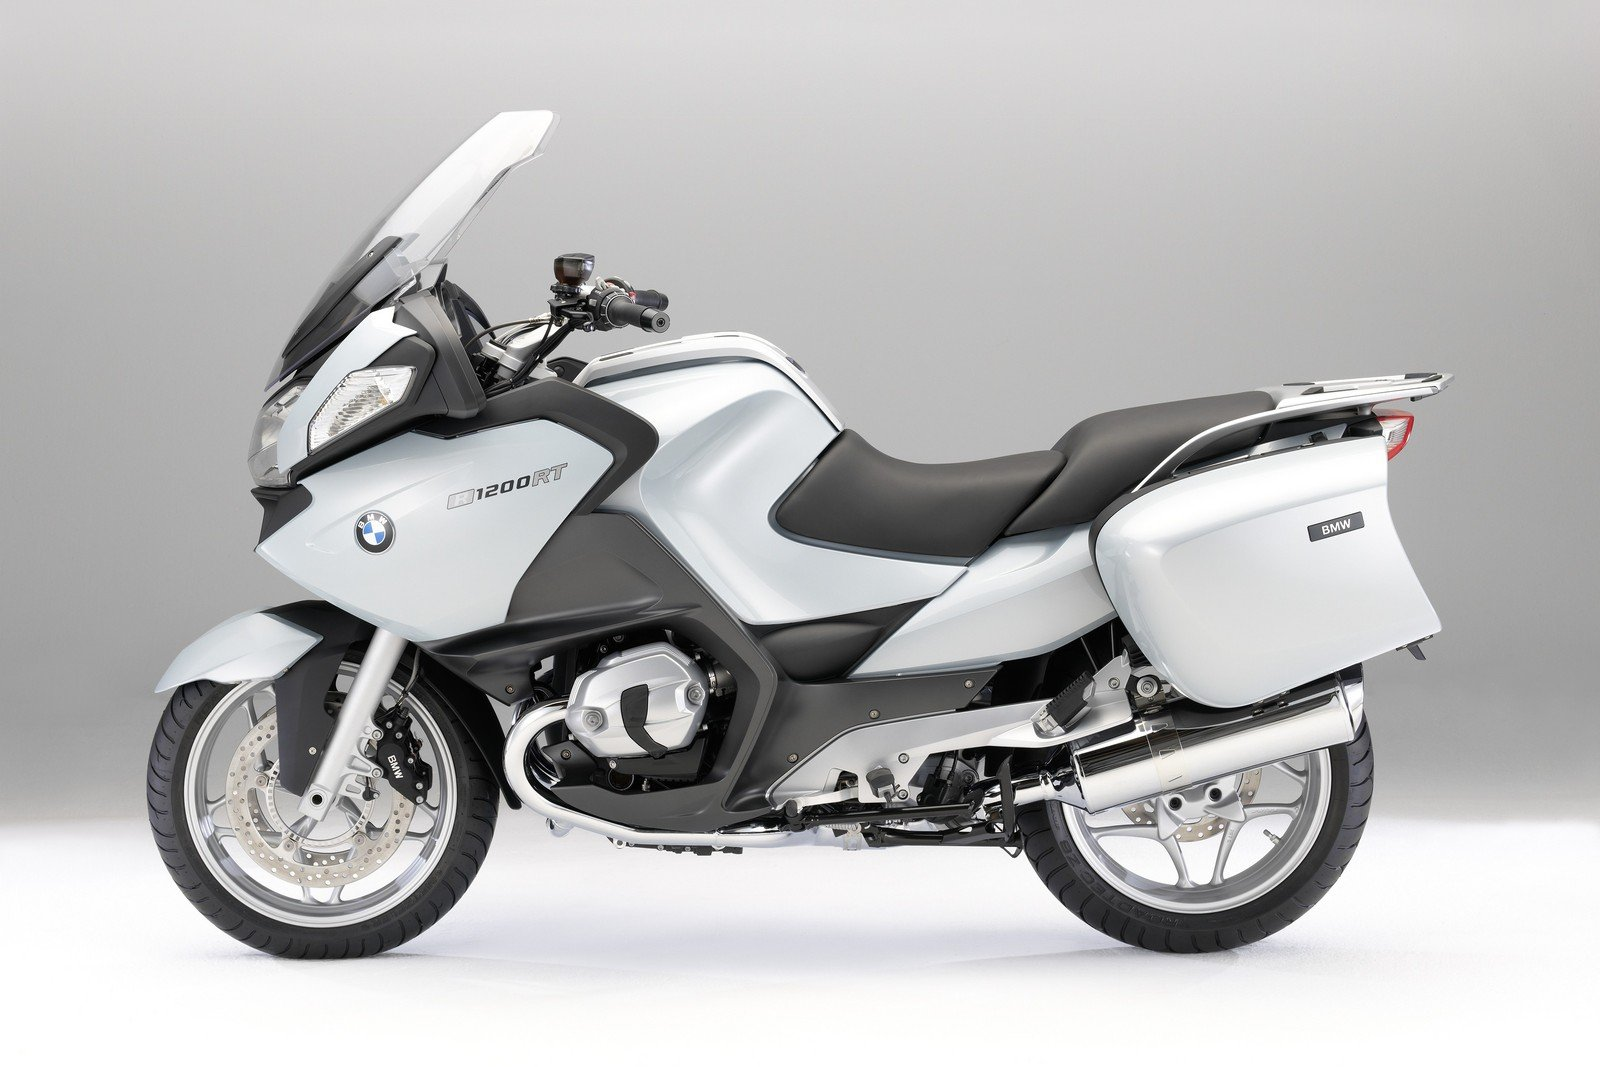 2010 bmw r 1200 rt picture 331520 motorcycle review top speed. Black Bedroom Furniture Sets. Home Design Ideas